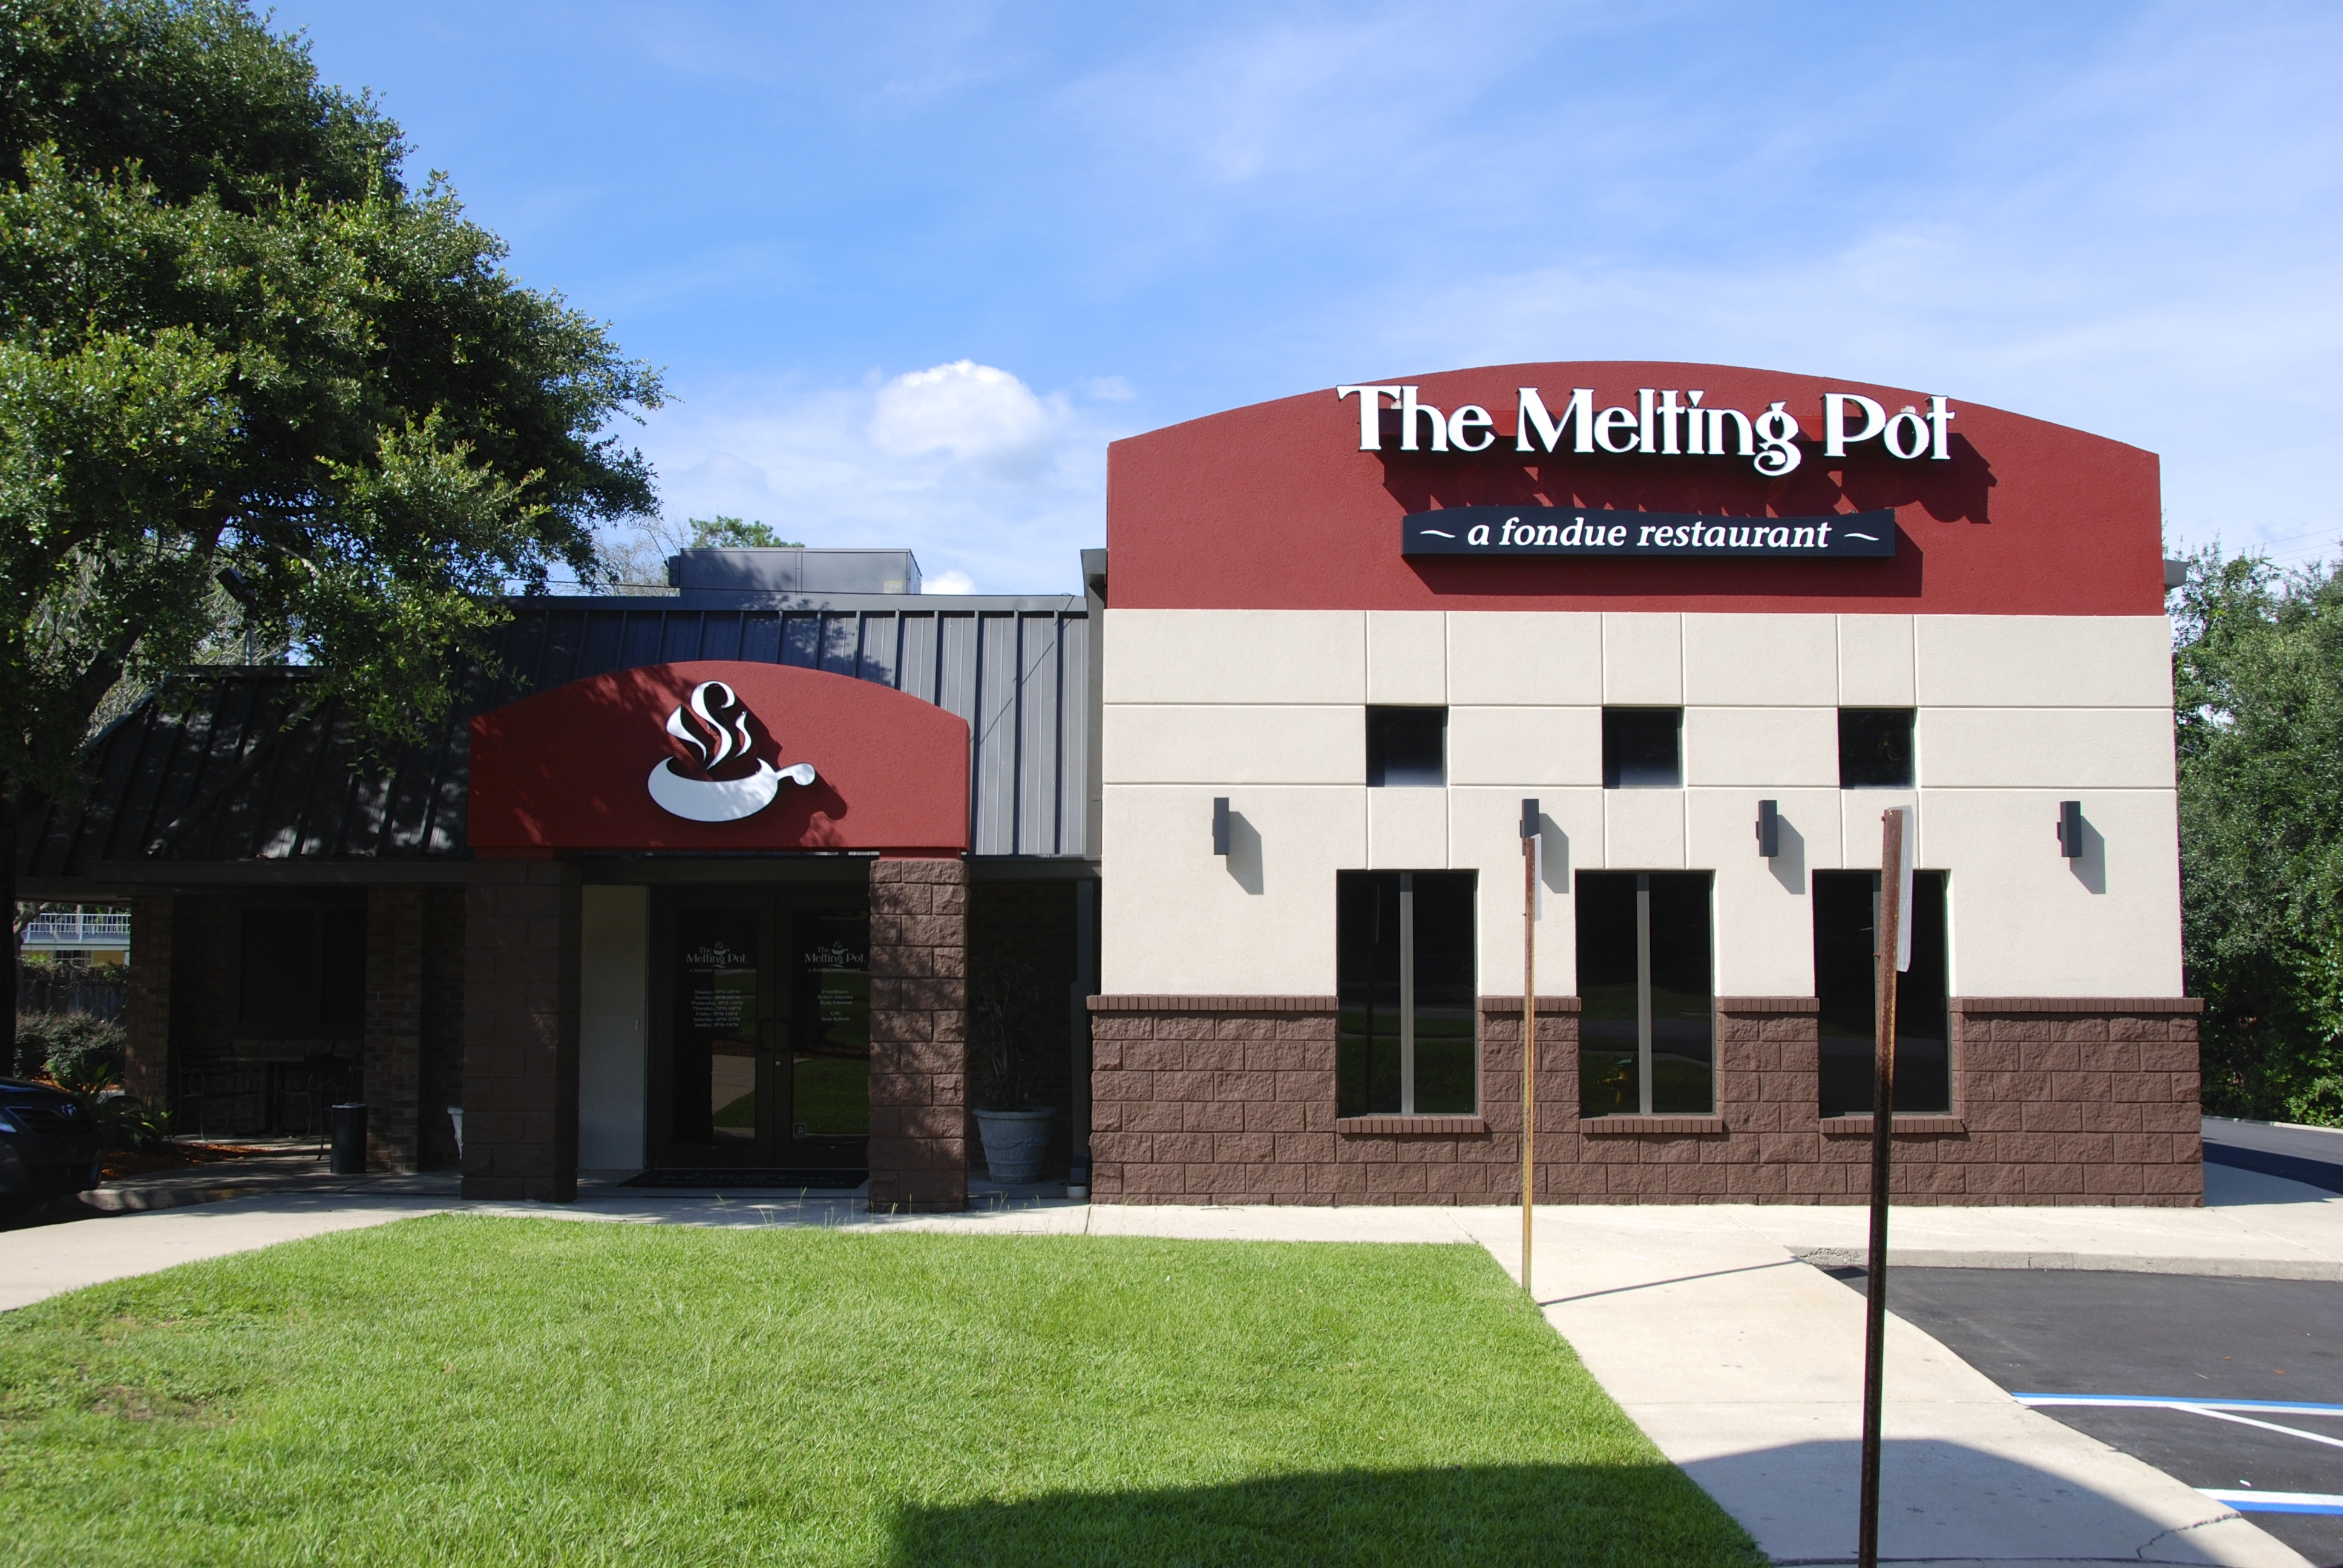 The Melting Pot in Tallahassee, FL